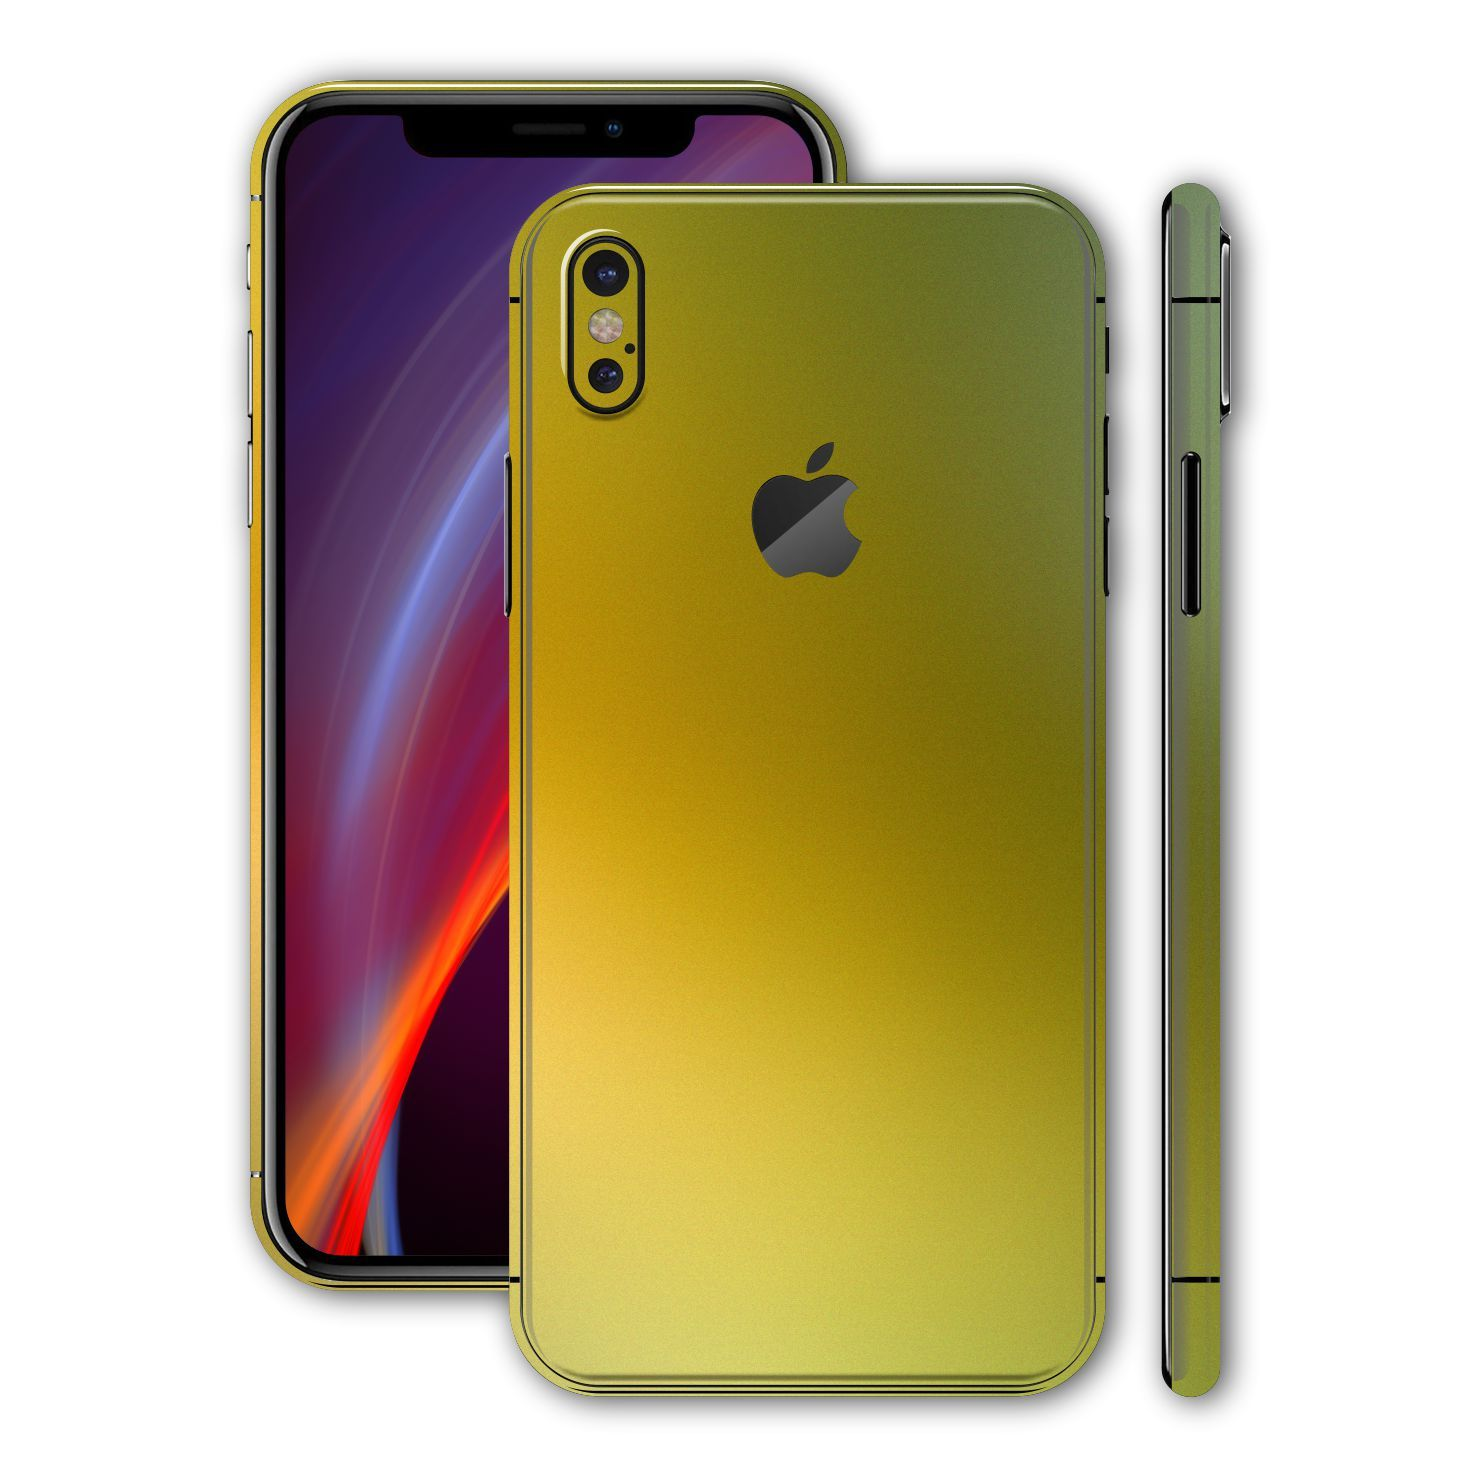 quality design 73064 1e4b1 iPhone X MATT + Brushed X GOLD Skin - X9